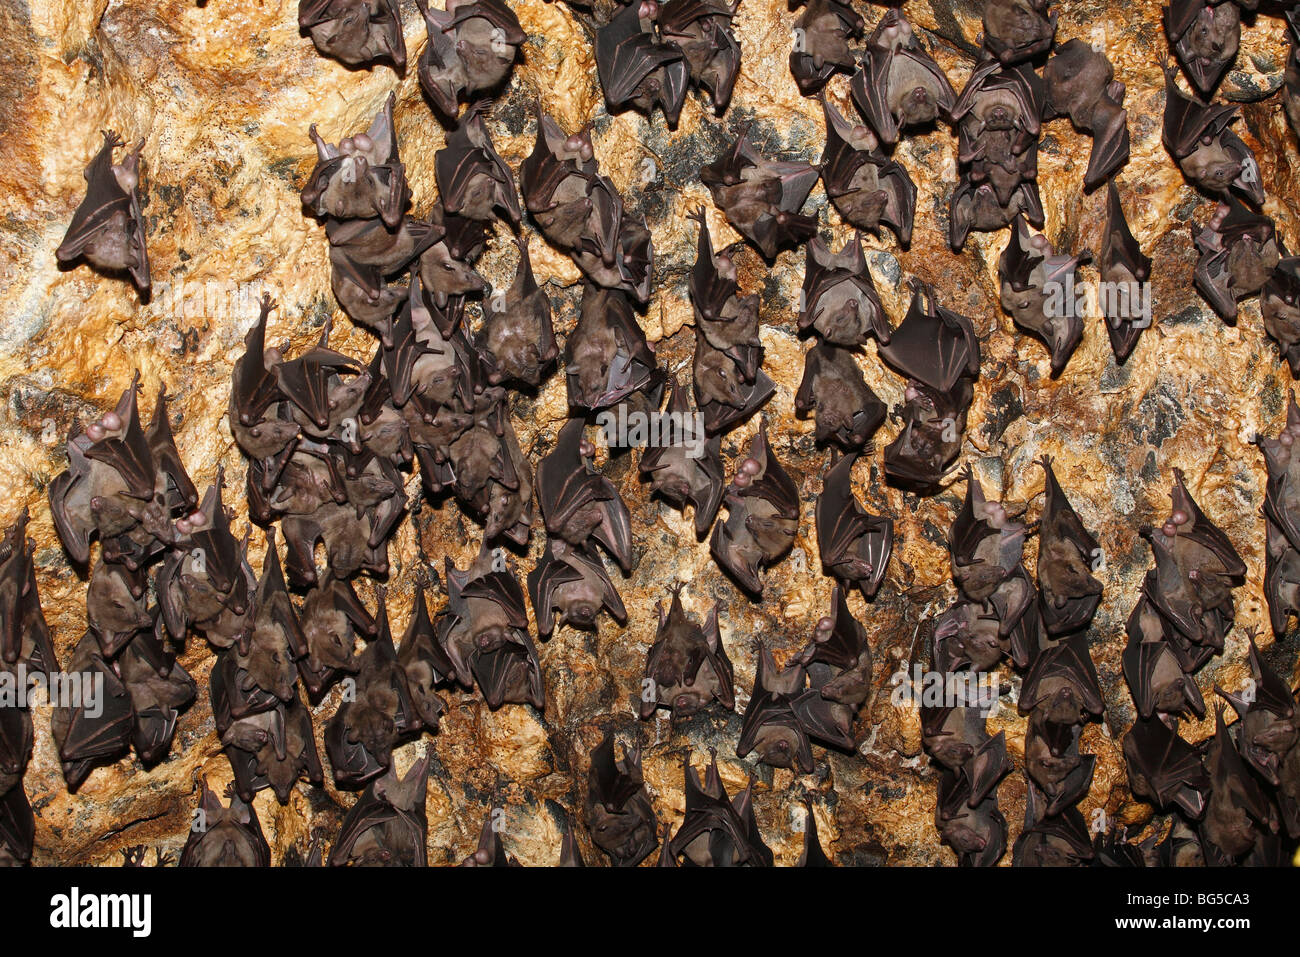 Colony of Geoffroy's Rousette, or Common Rousette Bats, Rousettus amplexicaudatus, roosting in  cave at Pura - Stock Image